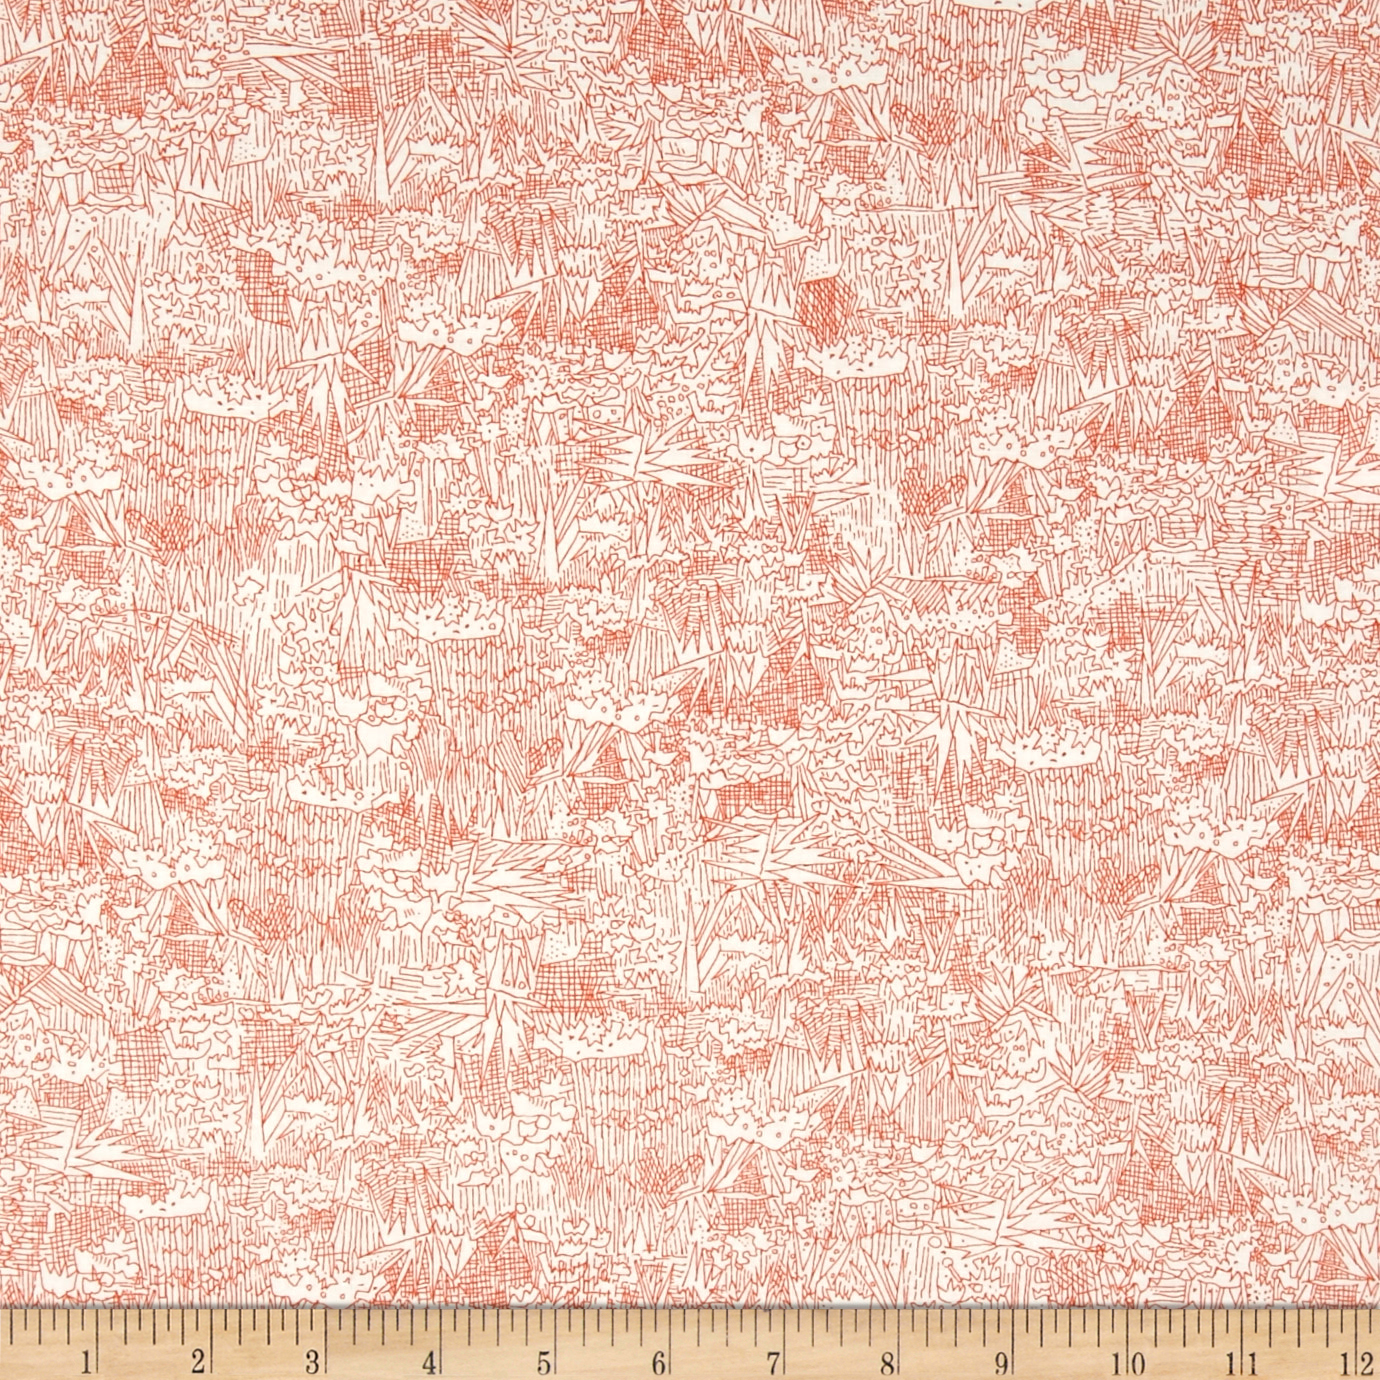 Kaufman Friedlander Collage Tangerine Fabric